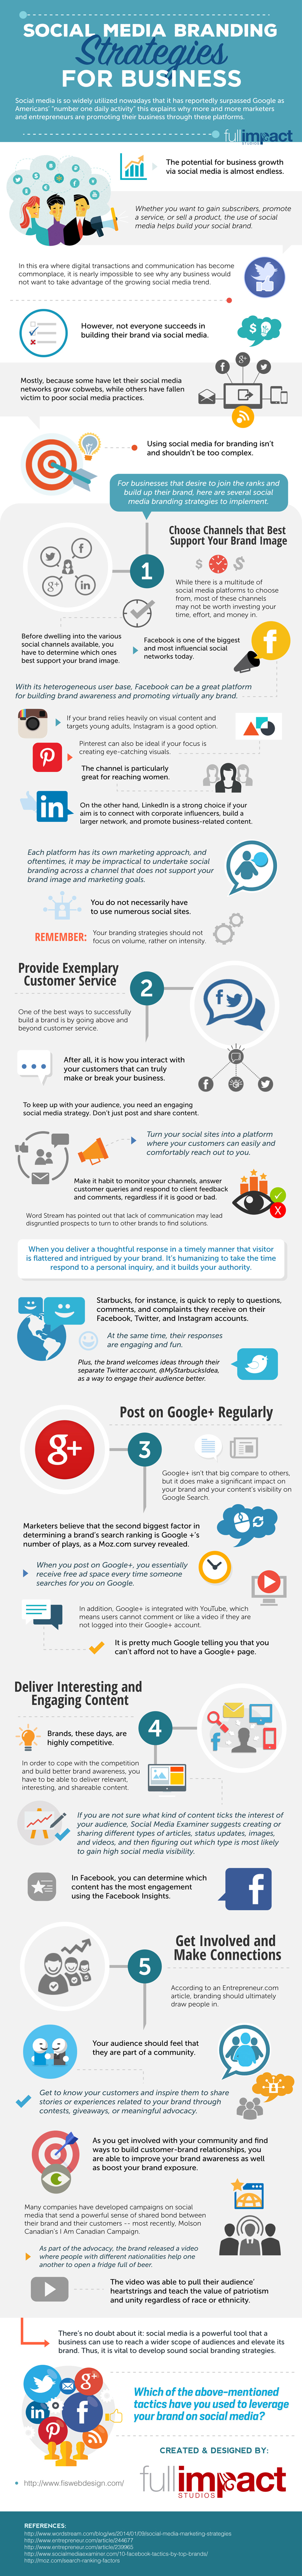 SOCIAL MEDIA BRANDING STRATEGIES FOR BUSINESS (INFOGRAPHIC)